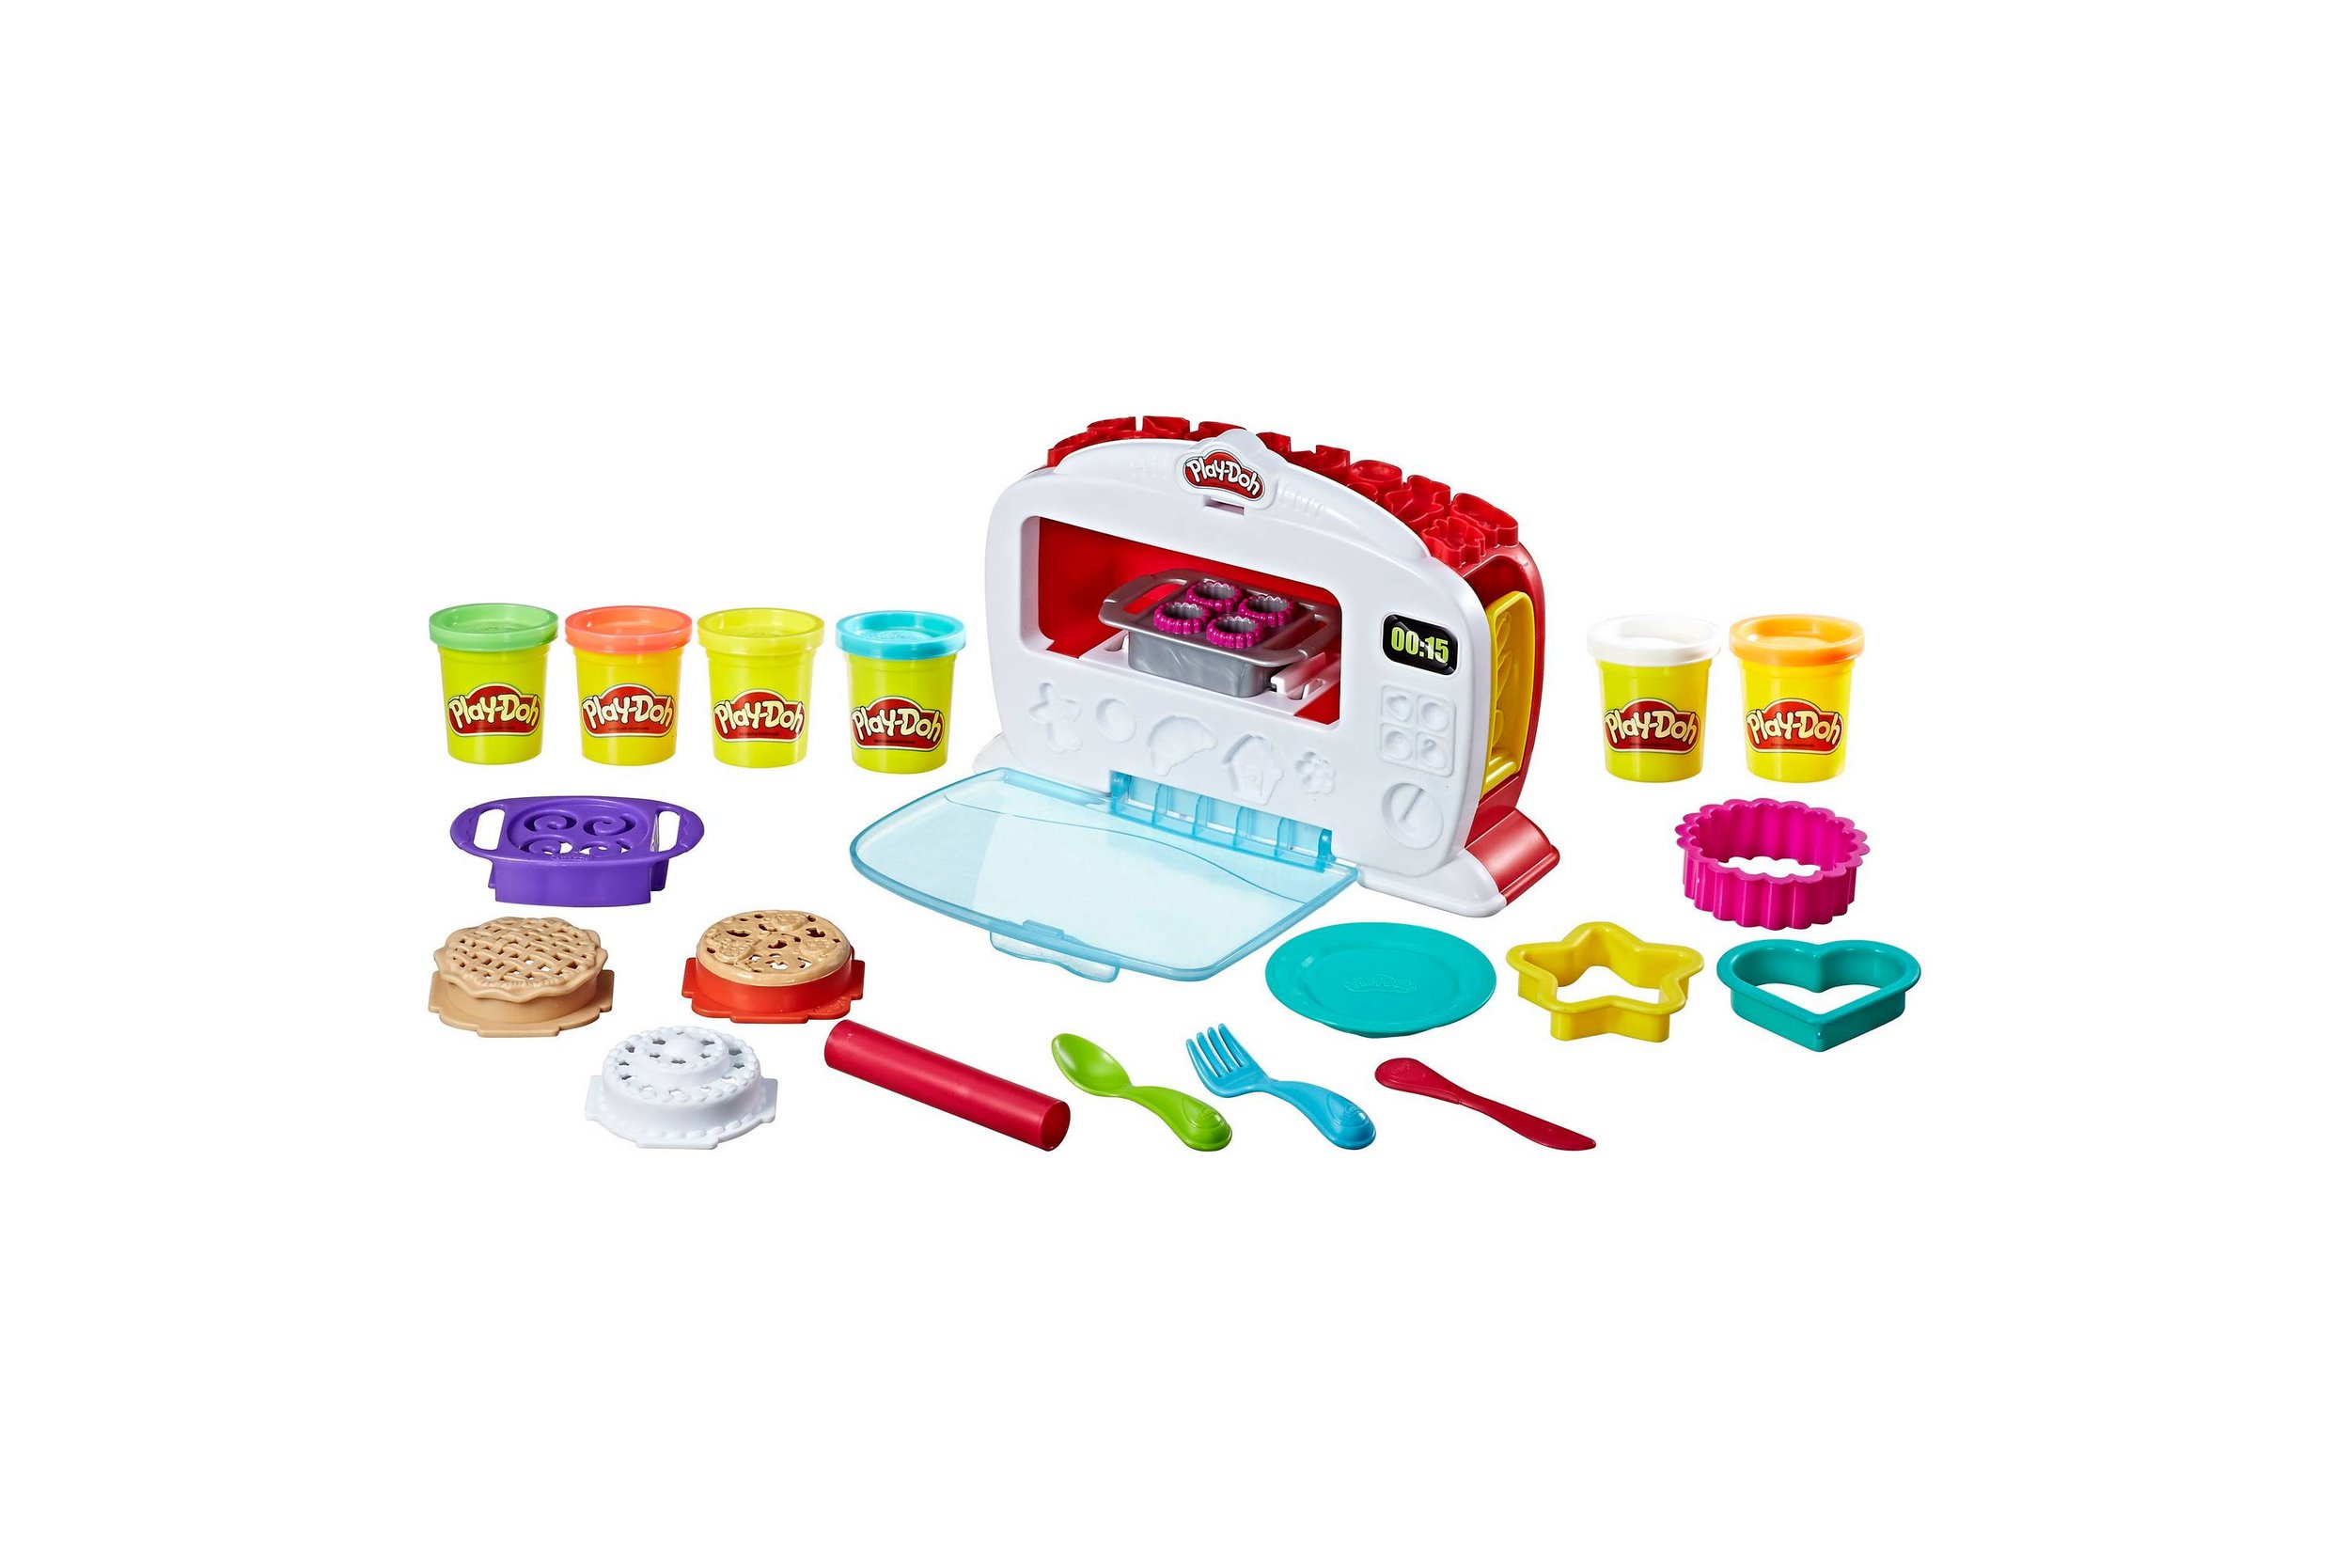 PLAY-DOH KITCHEN... - because they can start cooking before they're allowed to start cooking